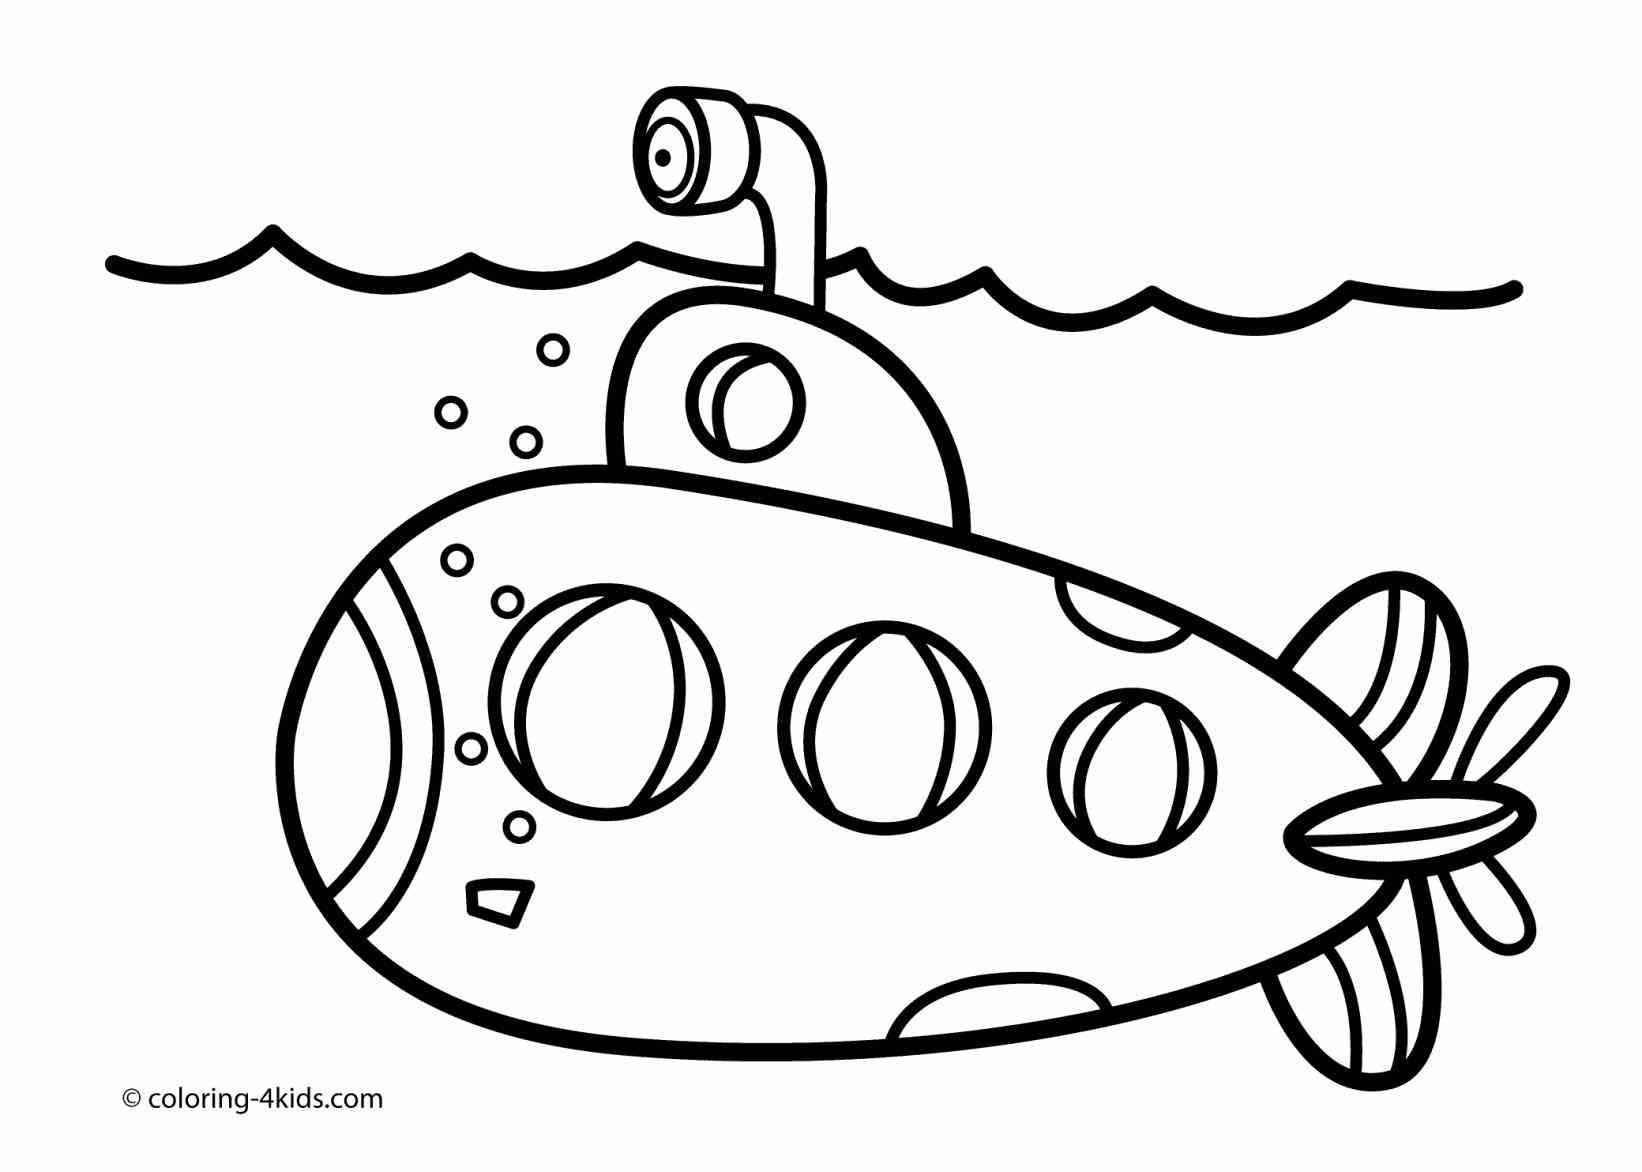 1642x1172 Potato Coloring Page Beautiful Sweet Potato Coloring Page Free